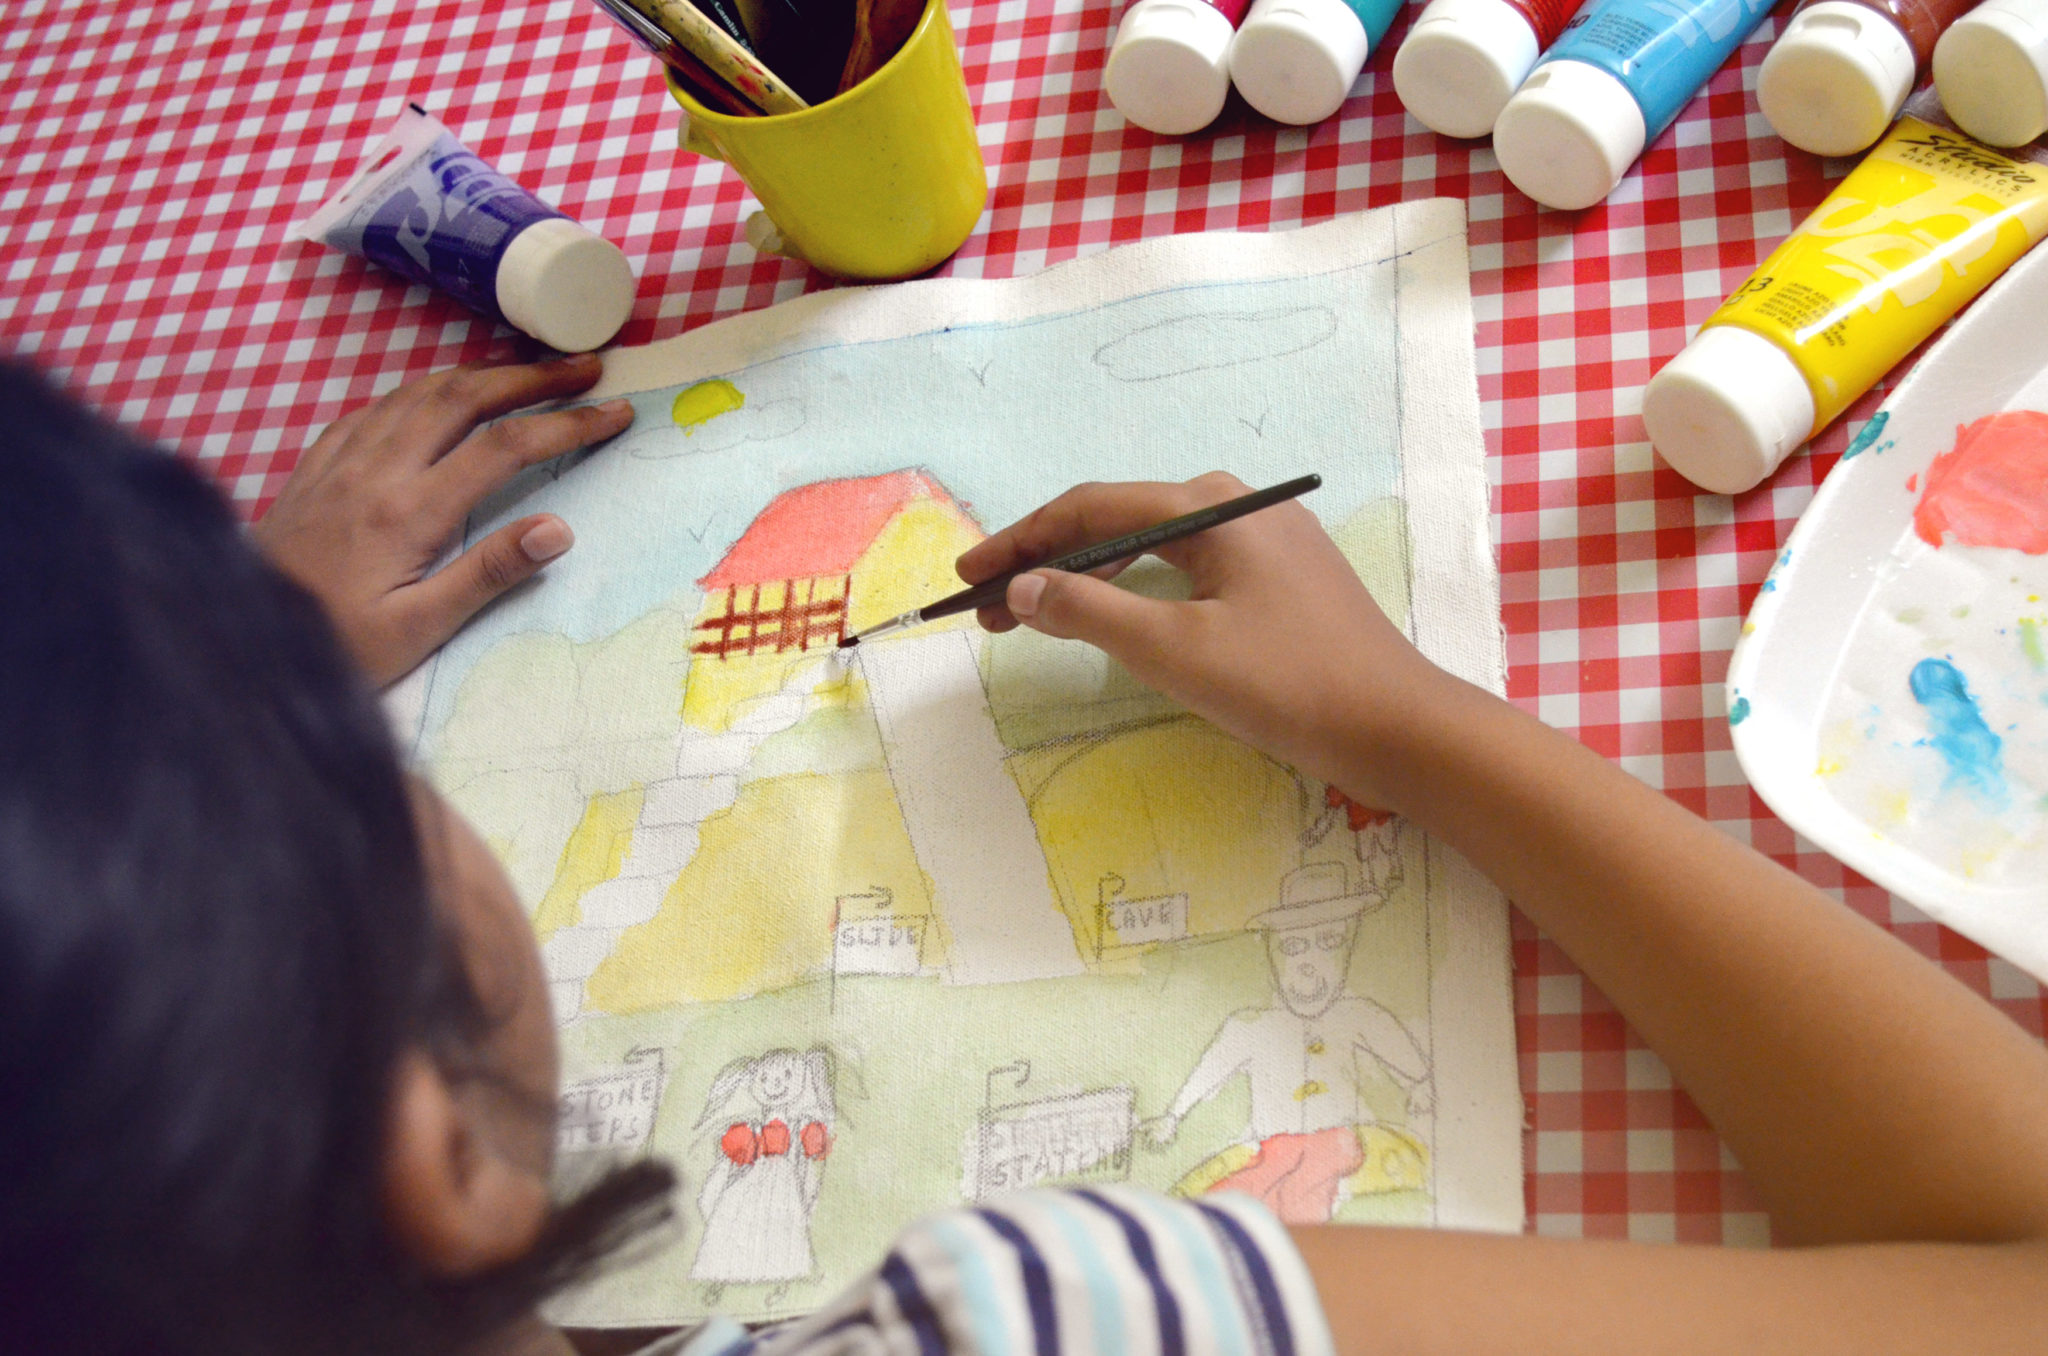 handcrafting together by drawing and painting